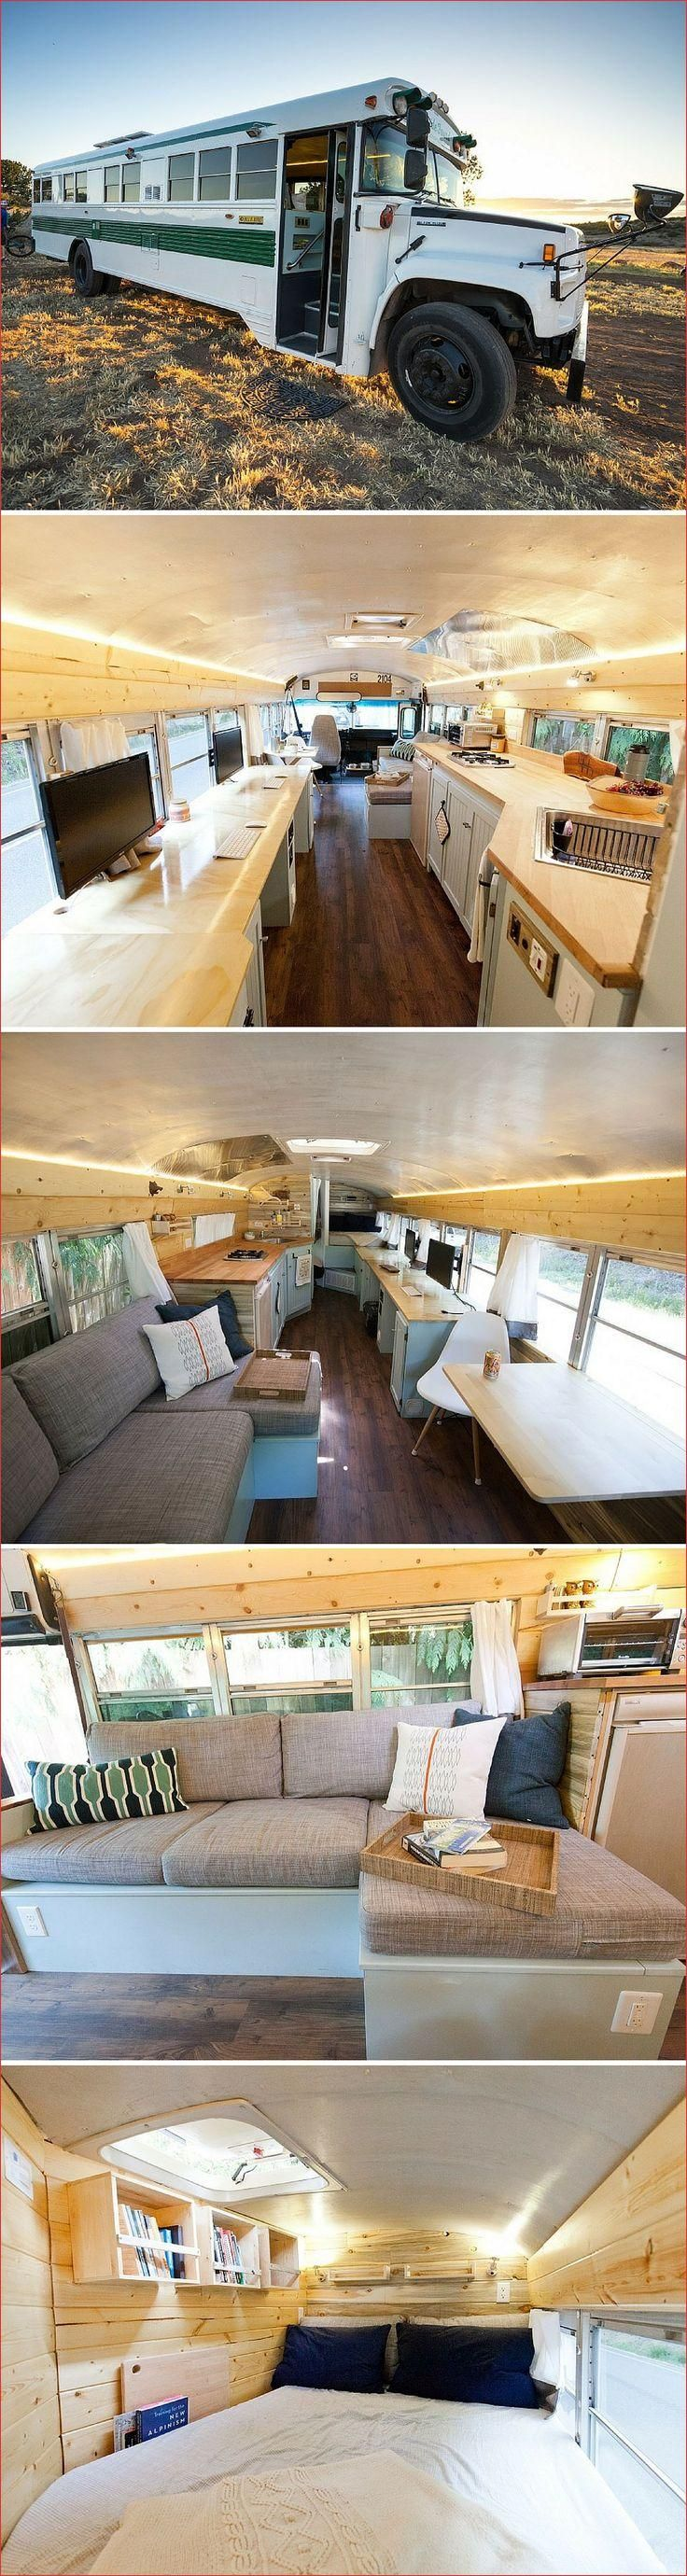 31 best Skoolie RV sample floor plans School bus conversion RV from Bus Conversion Ideas layout school buses, source:pinterest.com